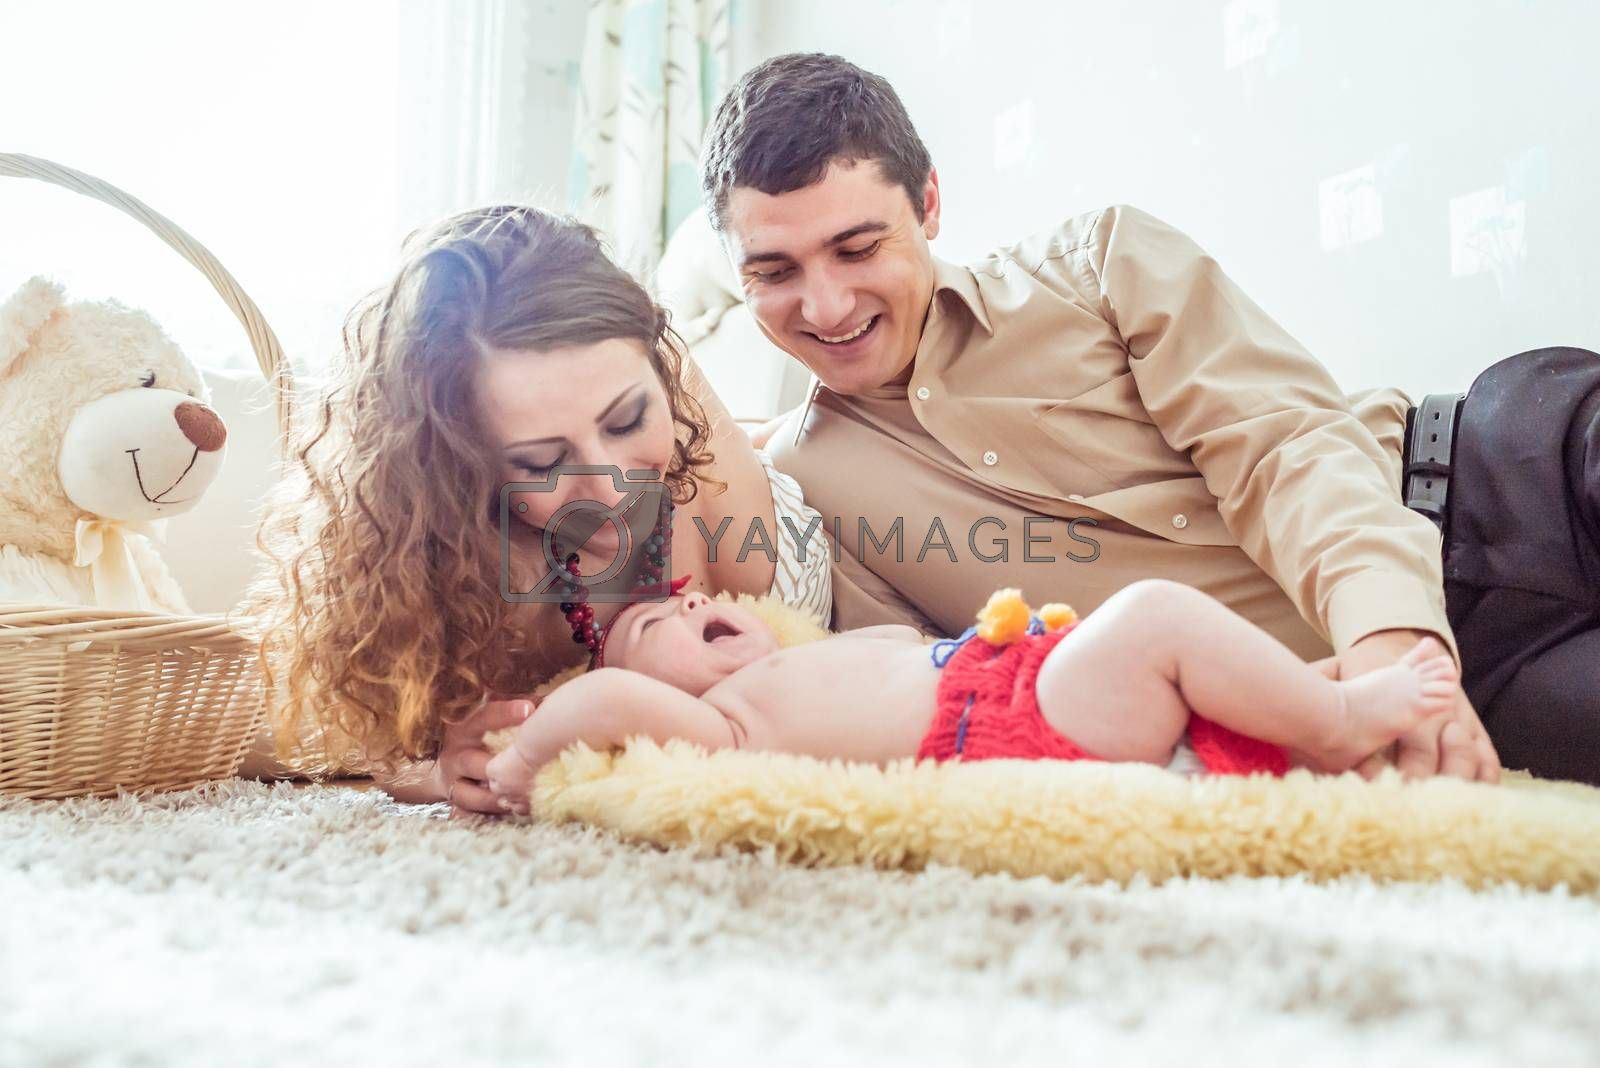 naked baby with her parents lying on soft blanket in the room